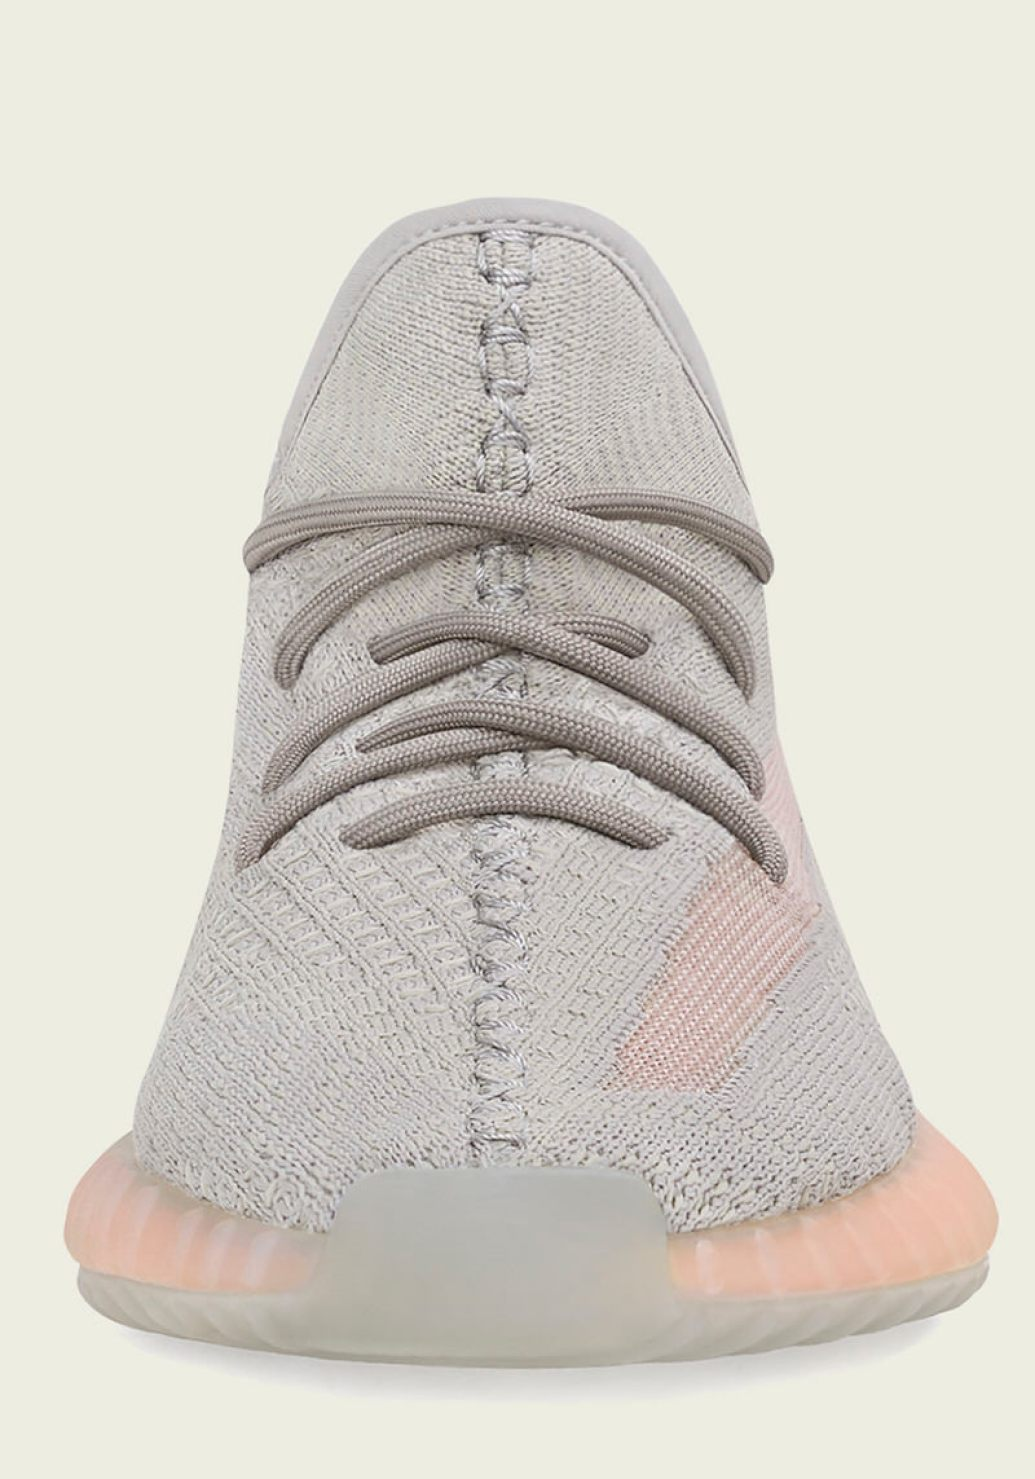 012d70156 adidas Yeezy Boost 350 V2 Doubles Up with